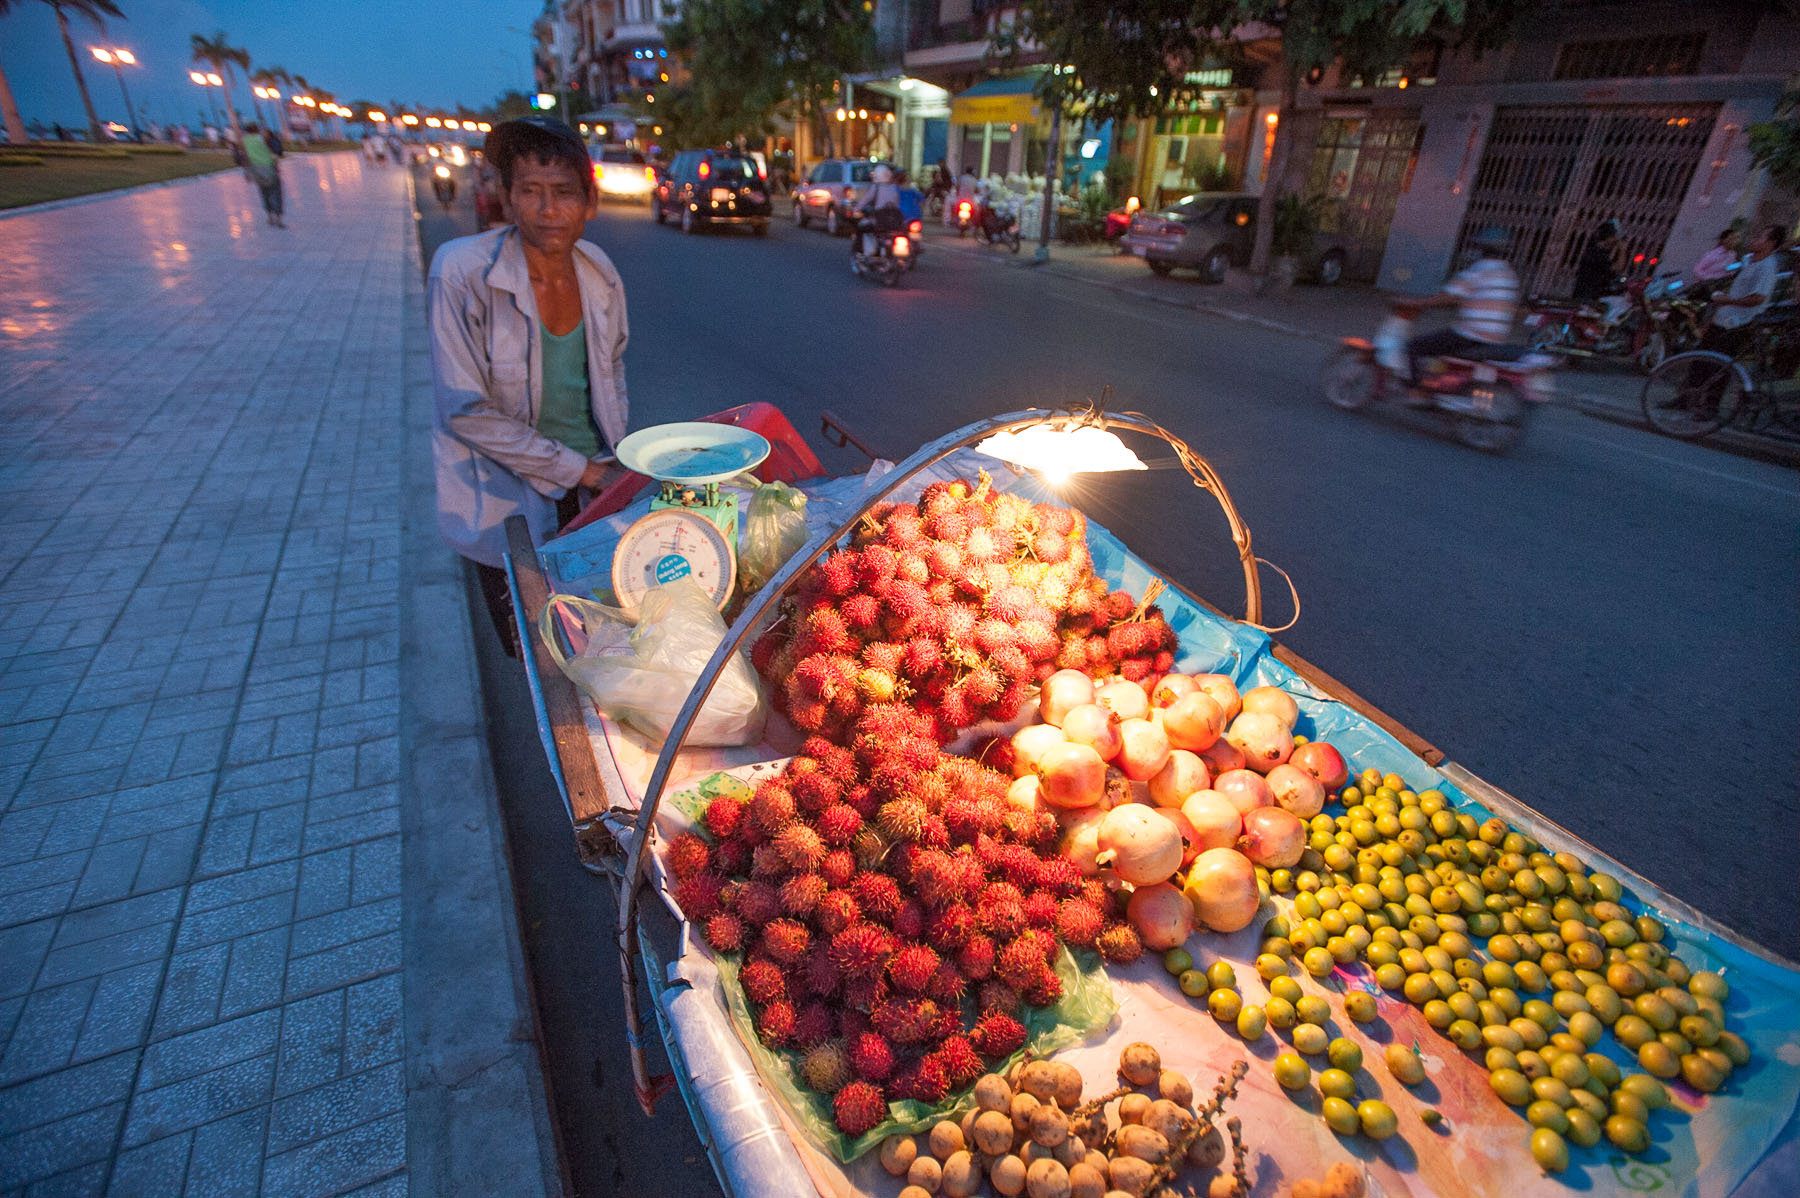 Lychee fruit street side vendor along Mekong River, Phnom Penh Cambodia.